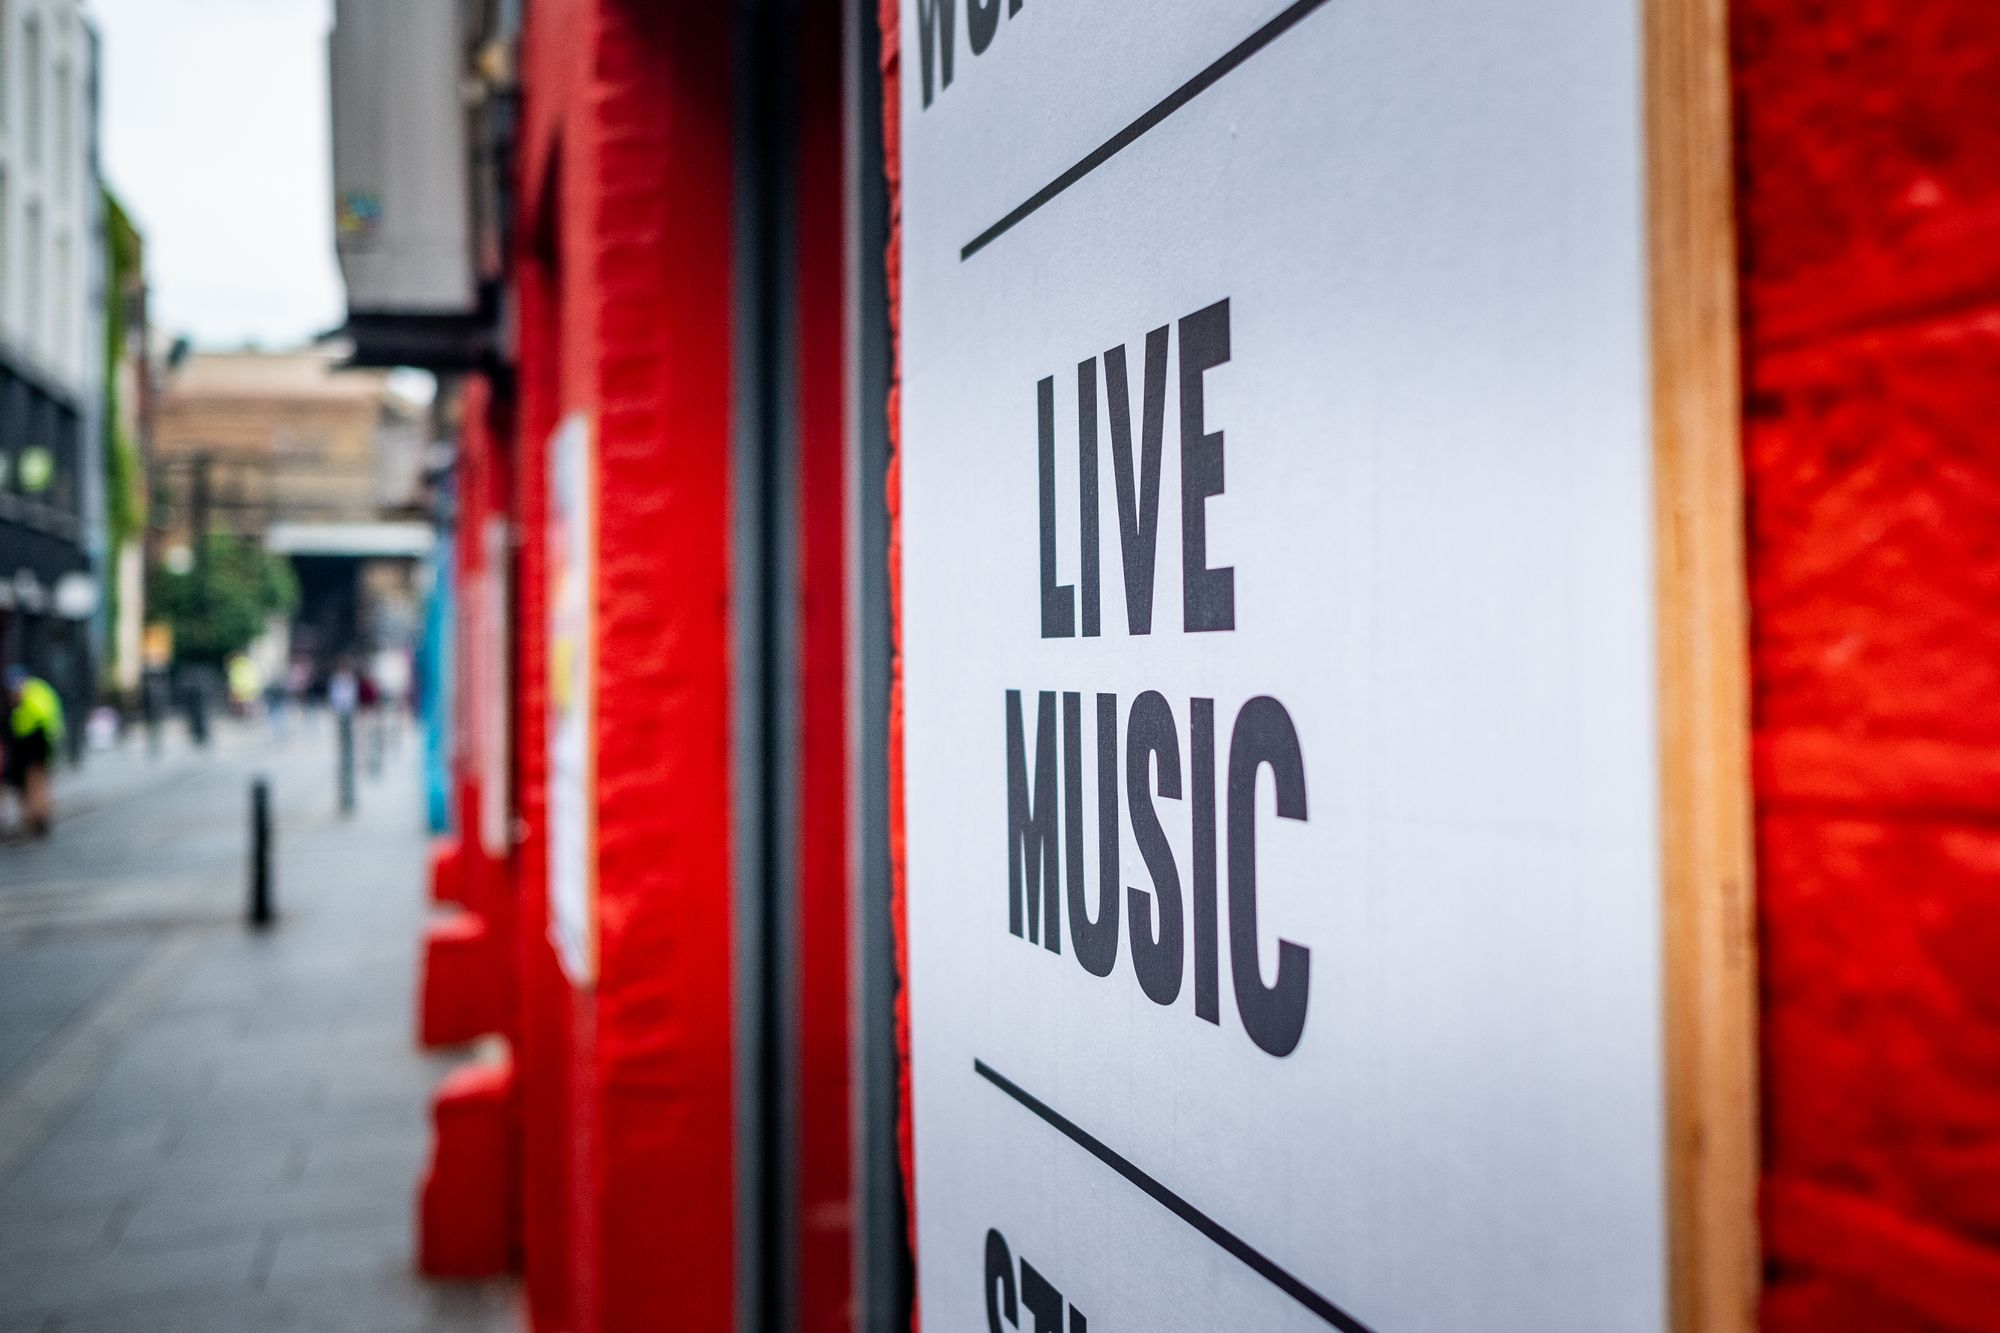 Live music sign at venue